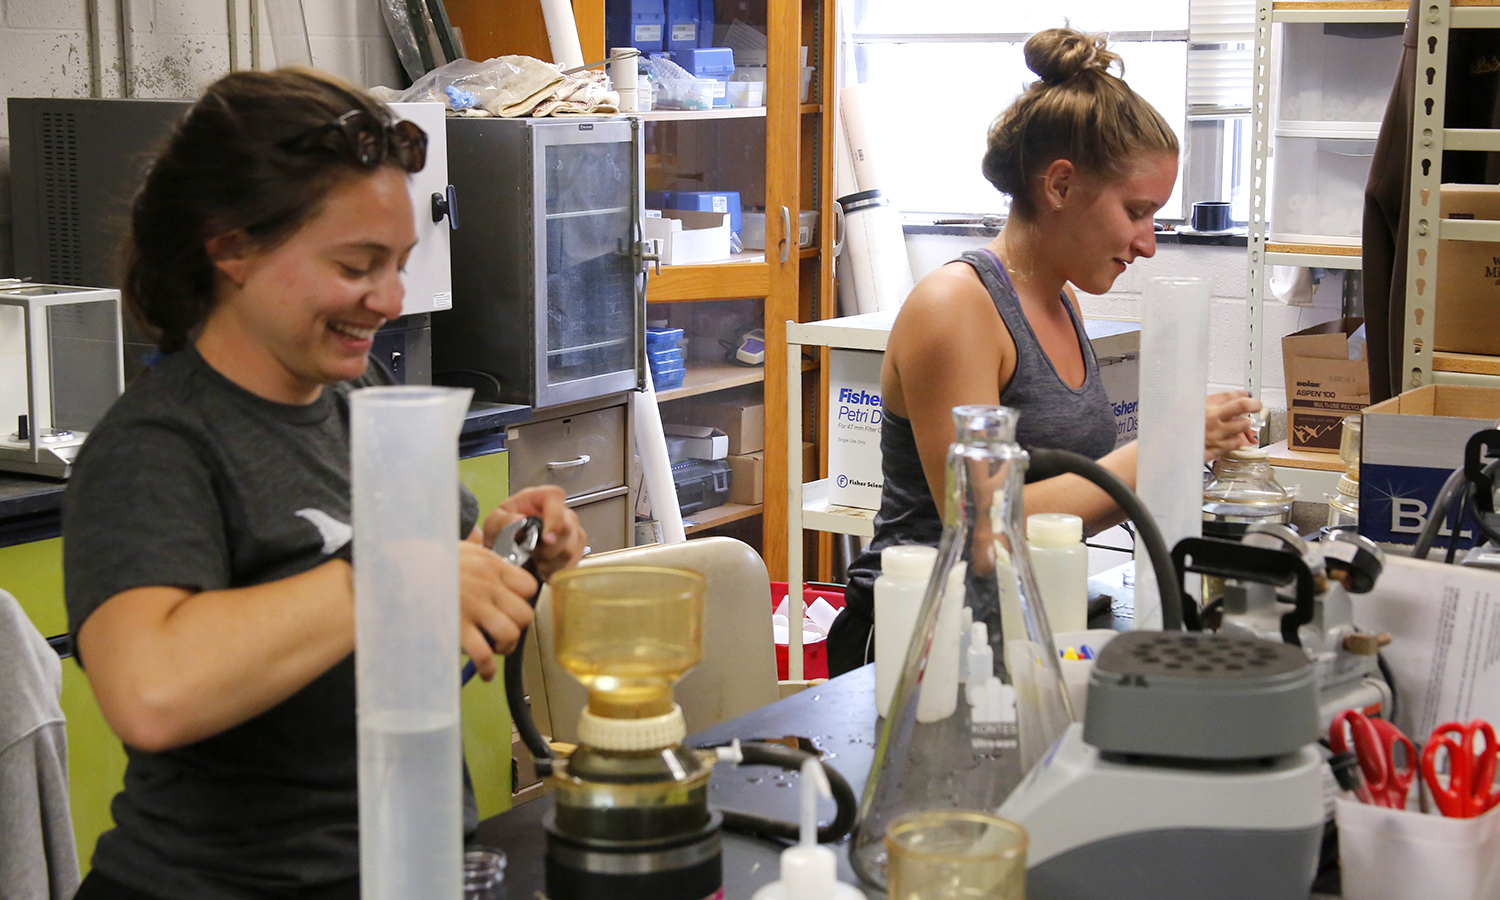 Bethany Kharrazi '21 and Emma Wilber '21 conduct research in Napier Hall. Both students are investigating the water quality of the Finger Lakes and measuring the presence of blue green algae in collaboration with Professor of Environmental Studies John Halfman.